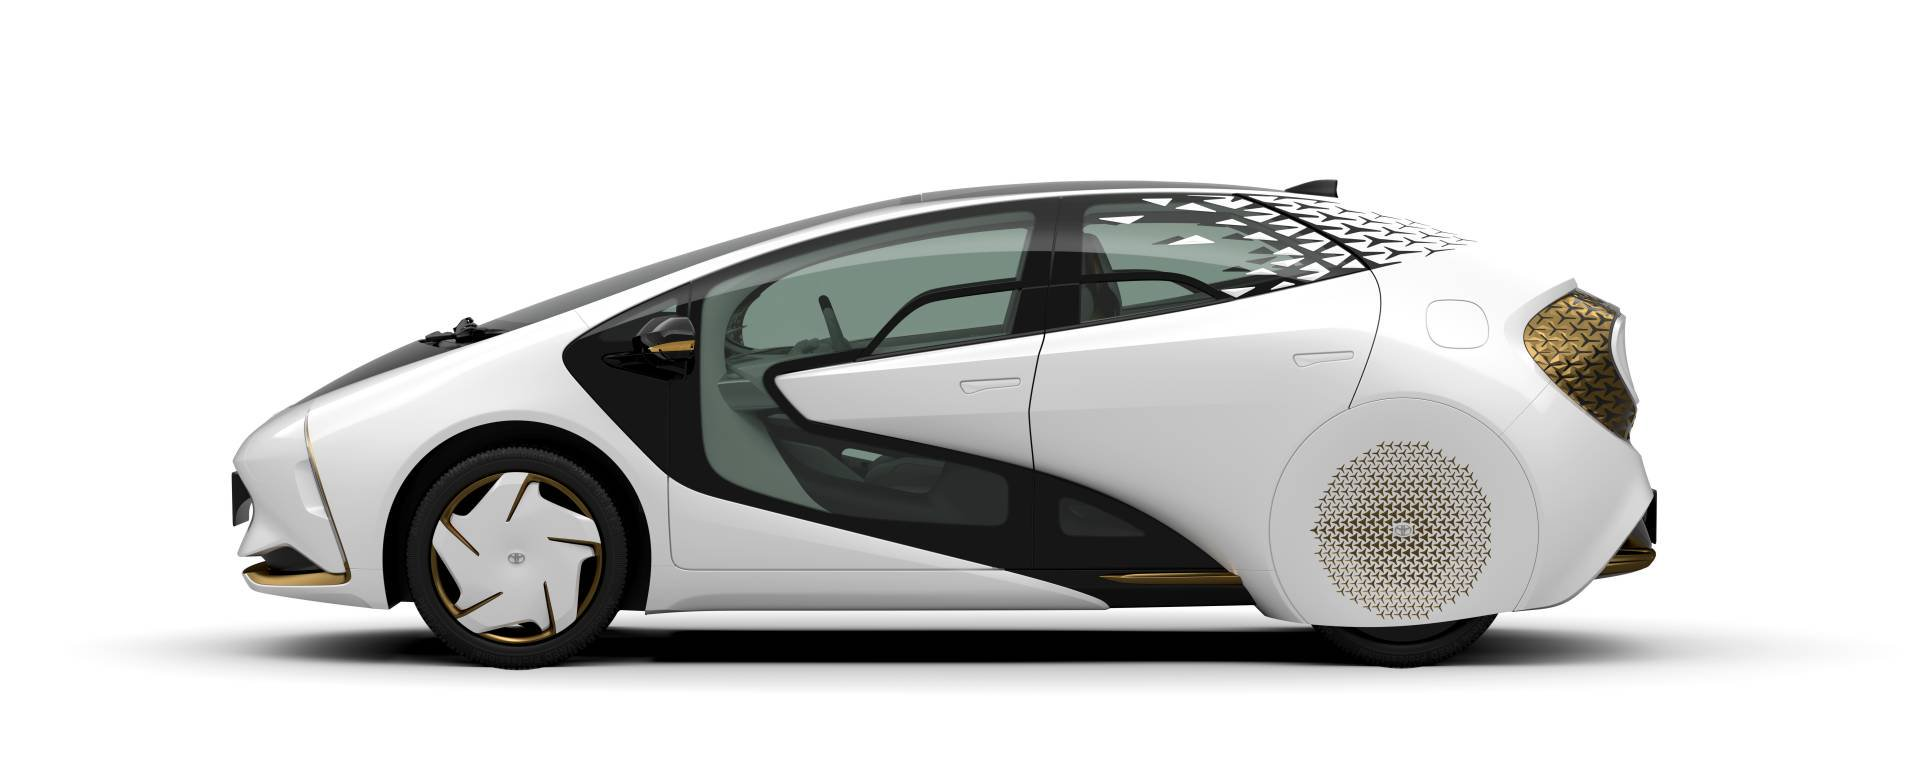 Updated-Toyota-Concept-i-and-e-Palette-for-Tokyo-Olympic-Games-2020-2